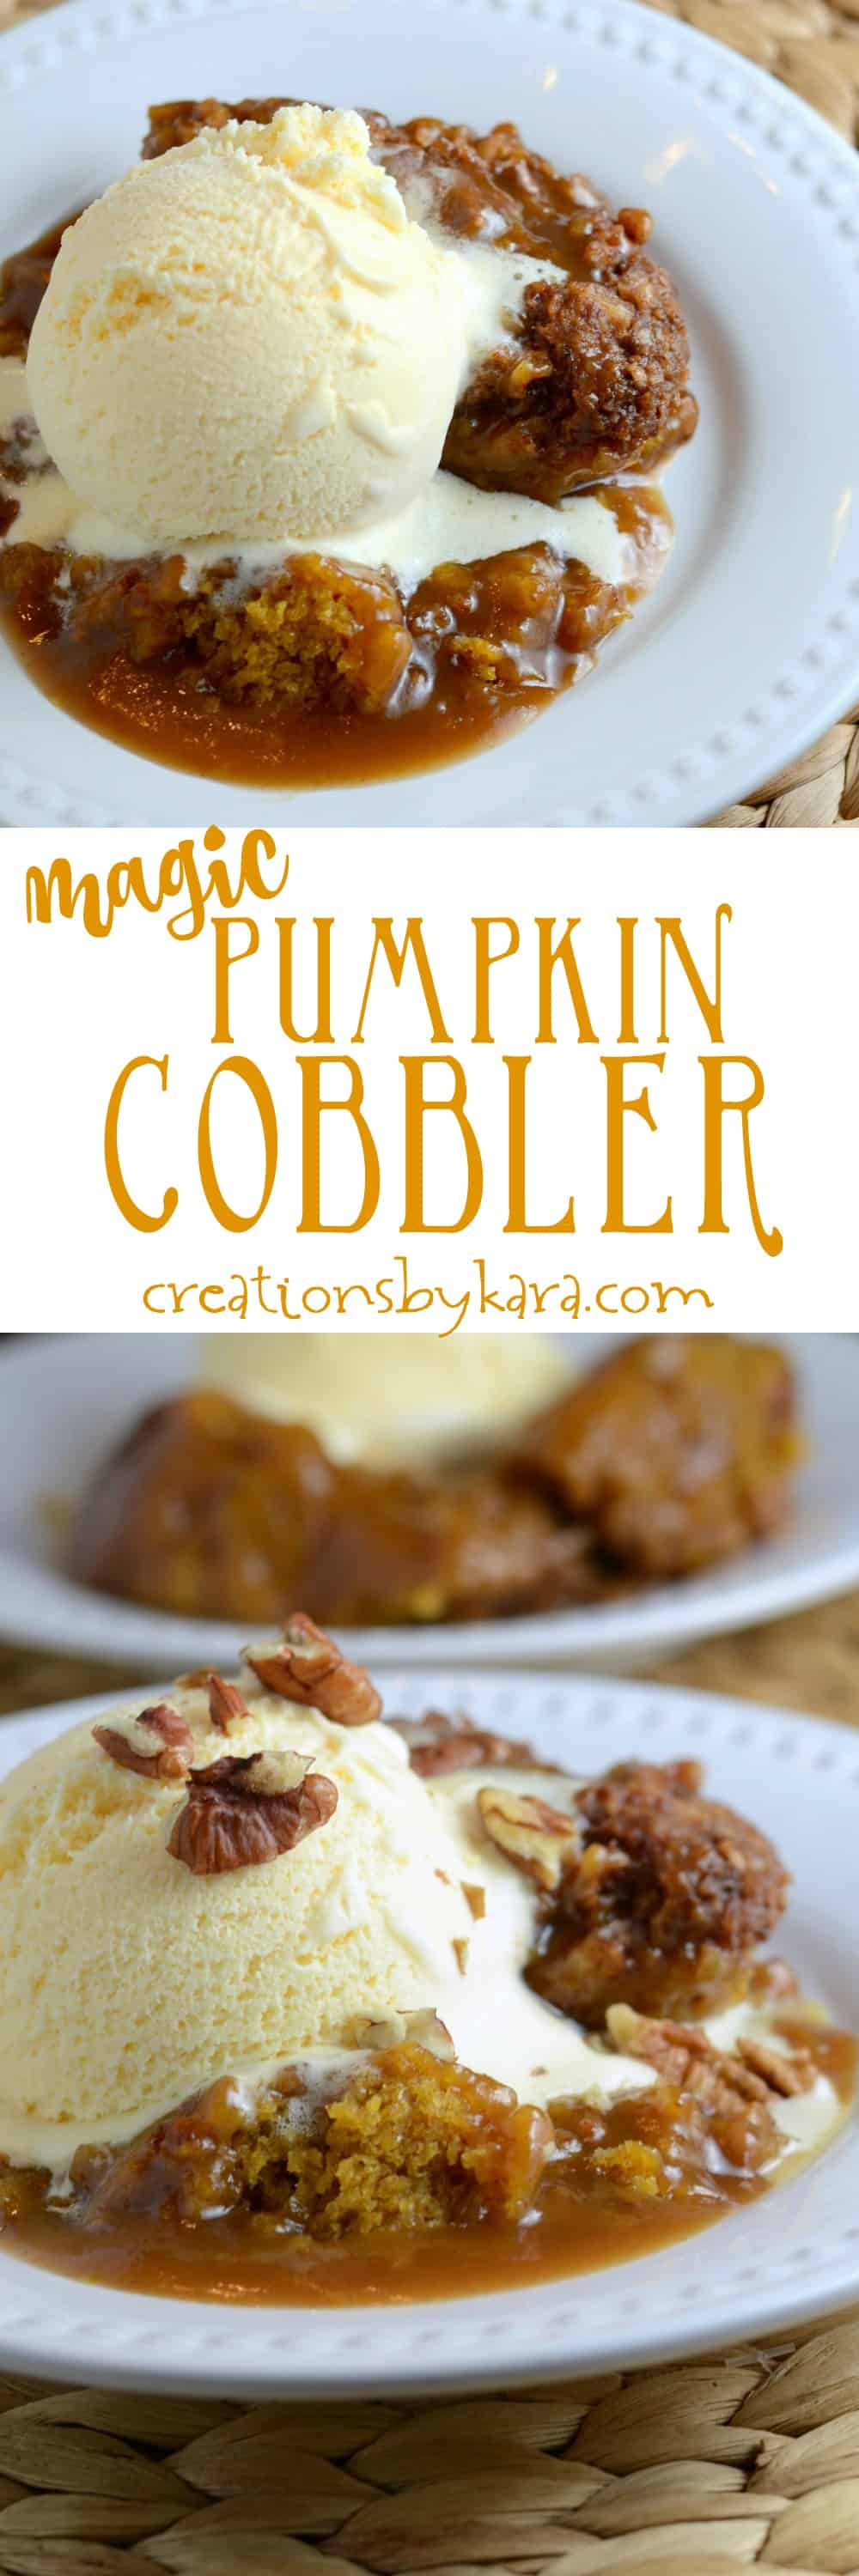 Recipe for incredible Pumpkin Cobbler that makes its own caramel cinnamon sauce as it bakes. A perfect fall dessert for pumpkin lovers! #pumpkincobbler #pumpkindessert #pumpkinrecipe